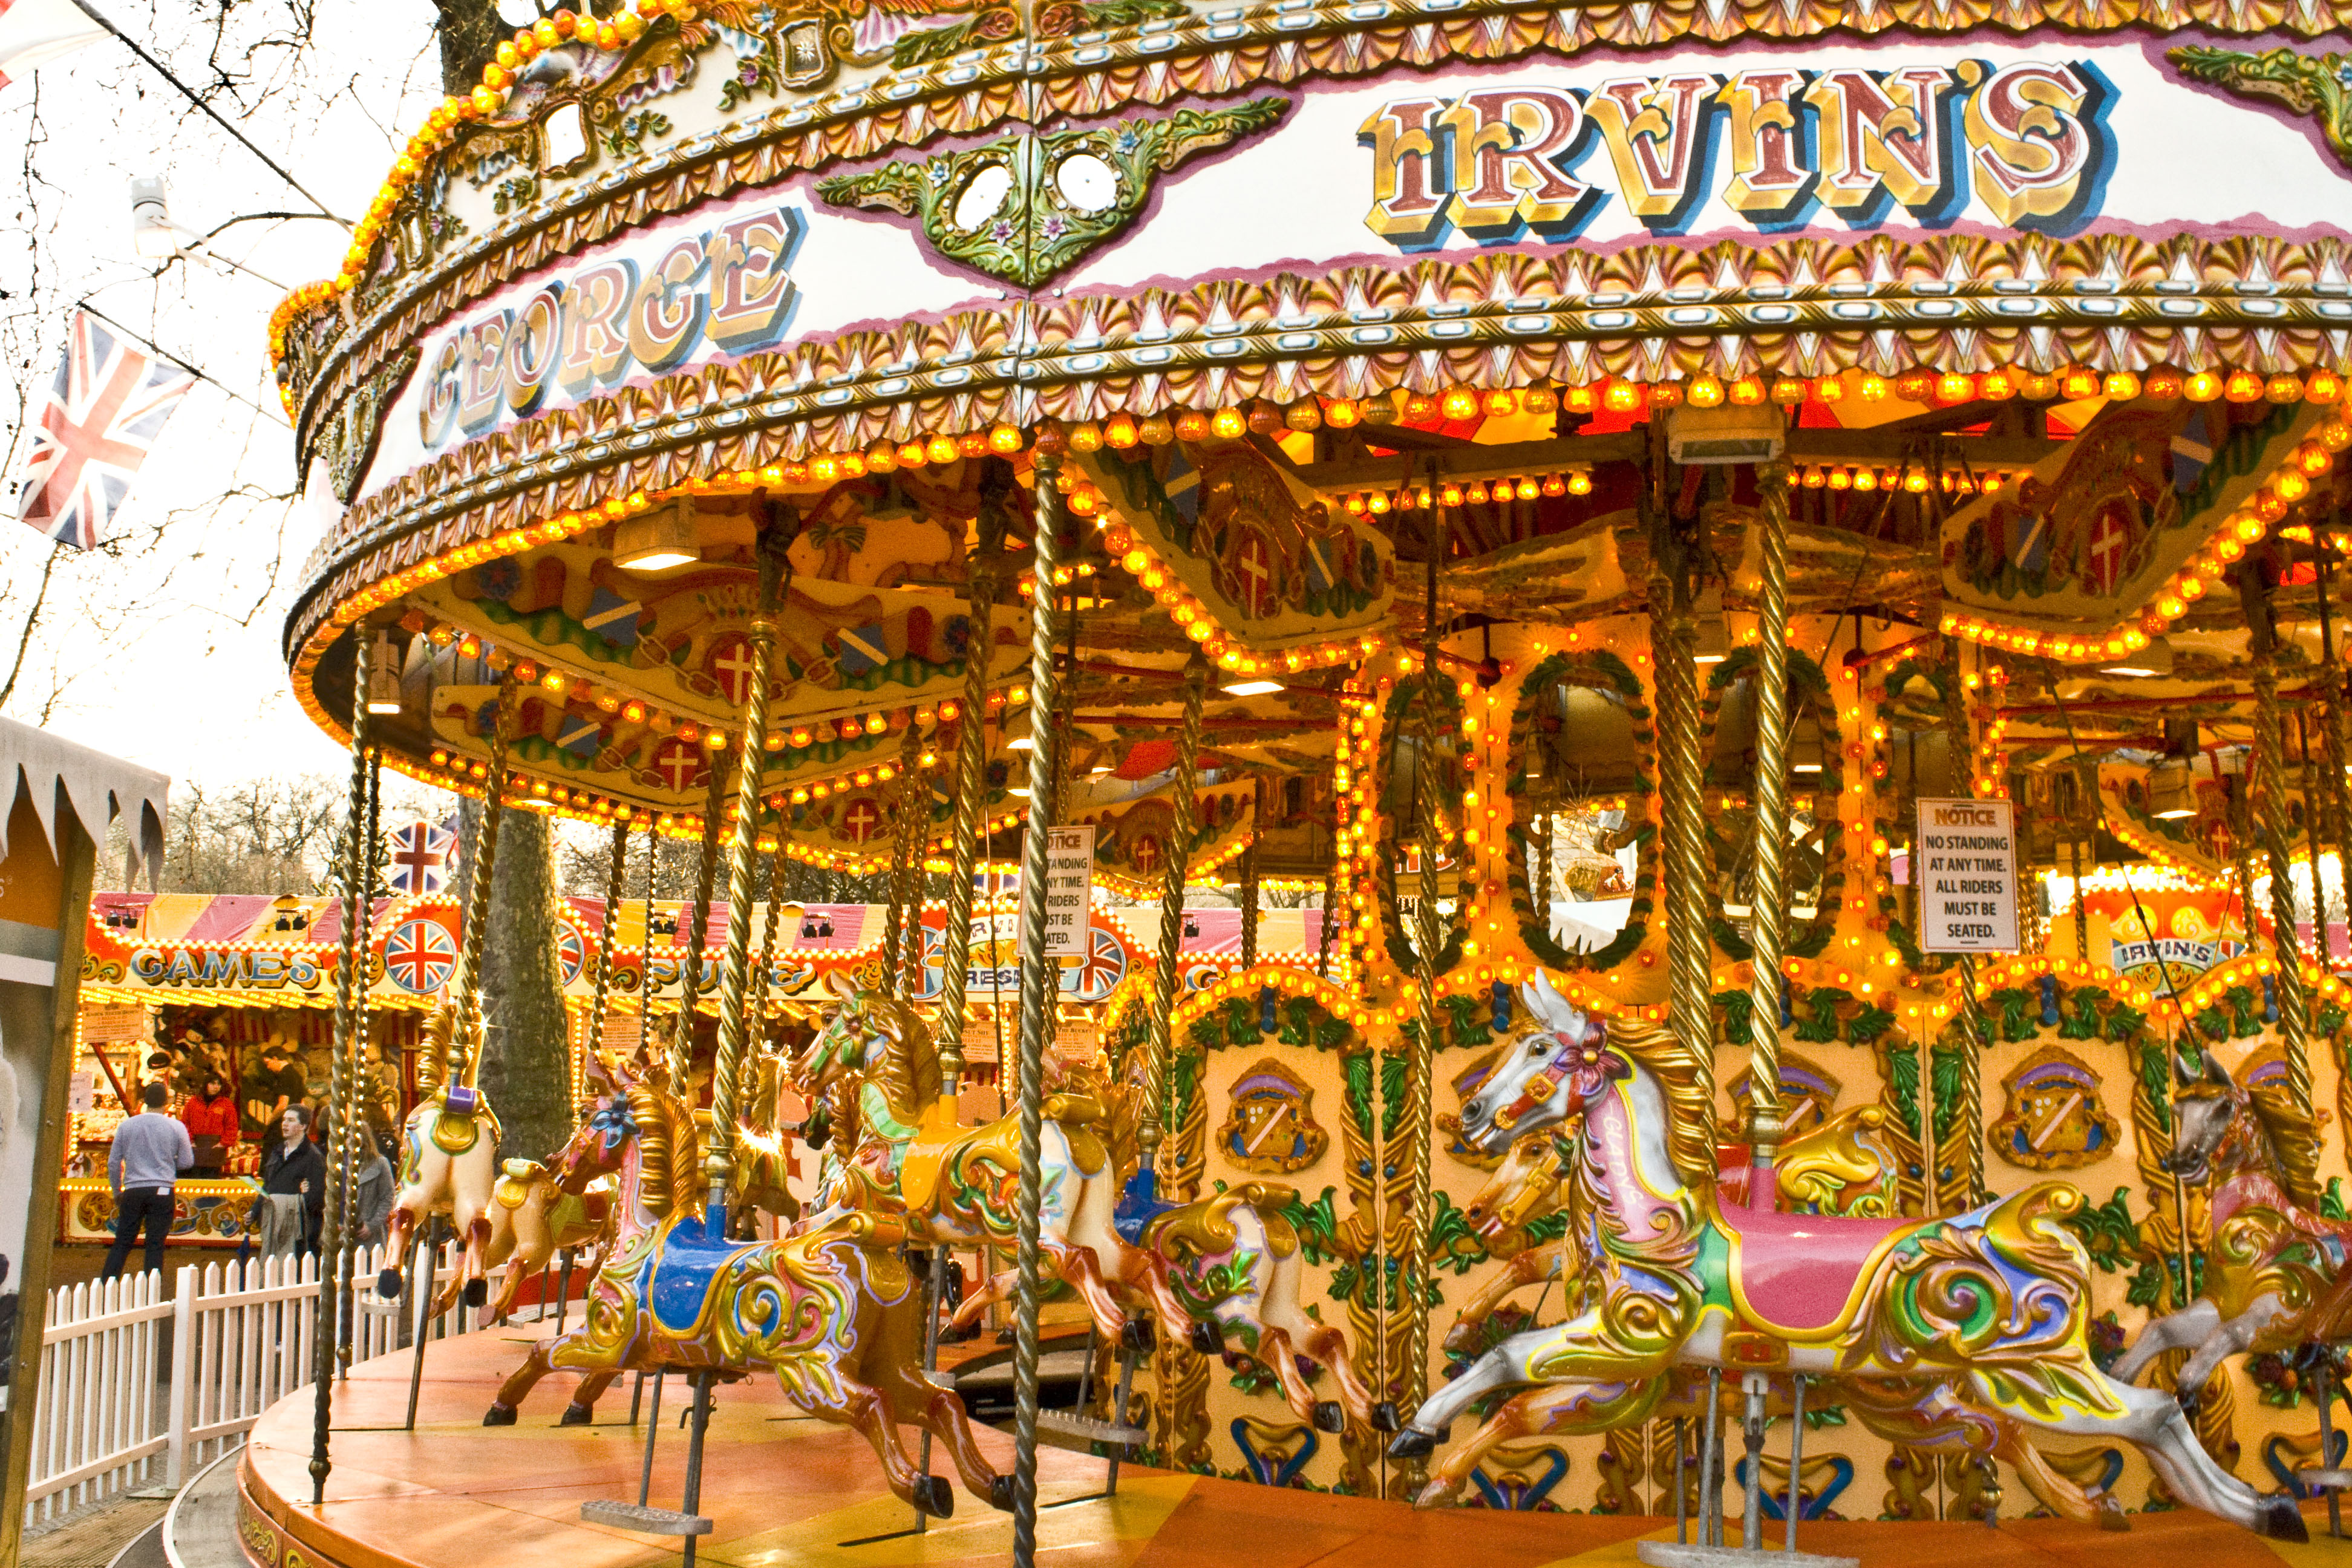 Carousel Wallpapers High Quality Download 3888x2592